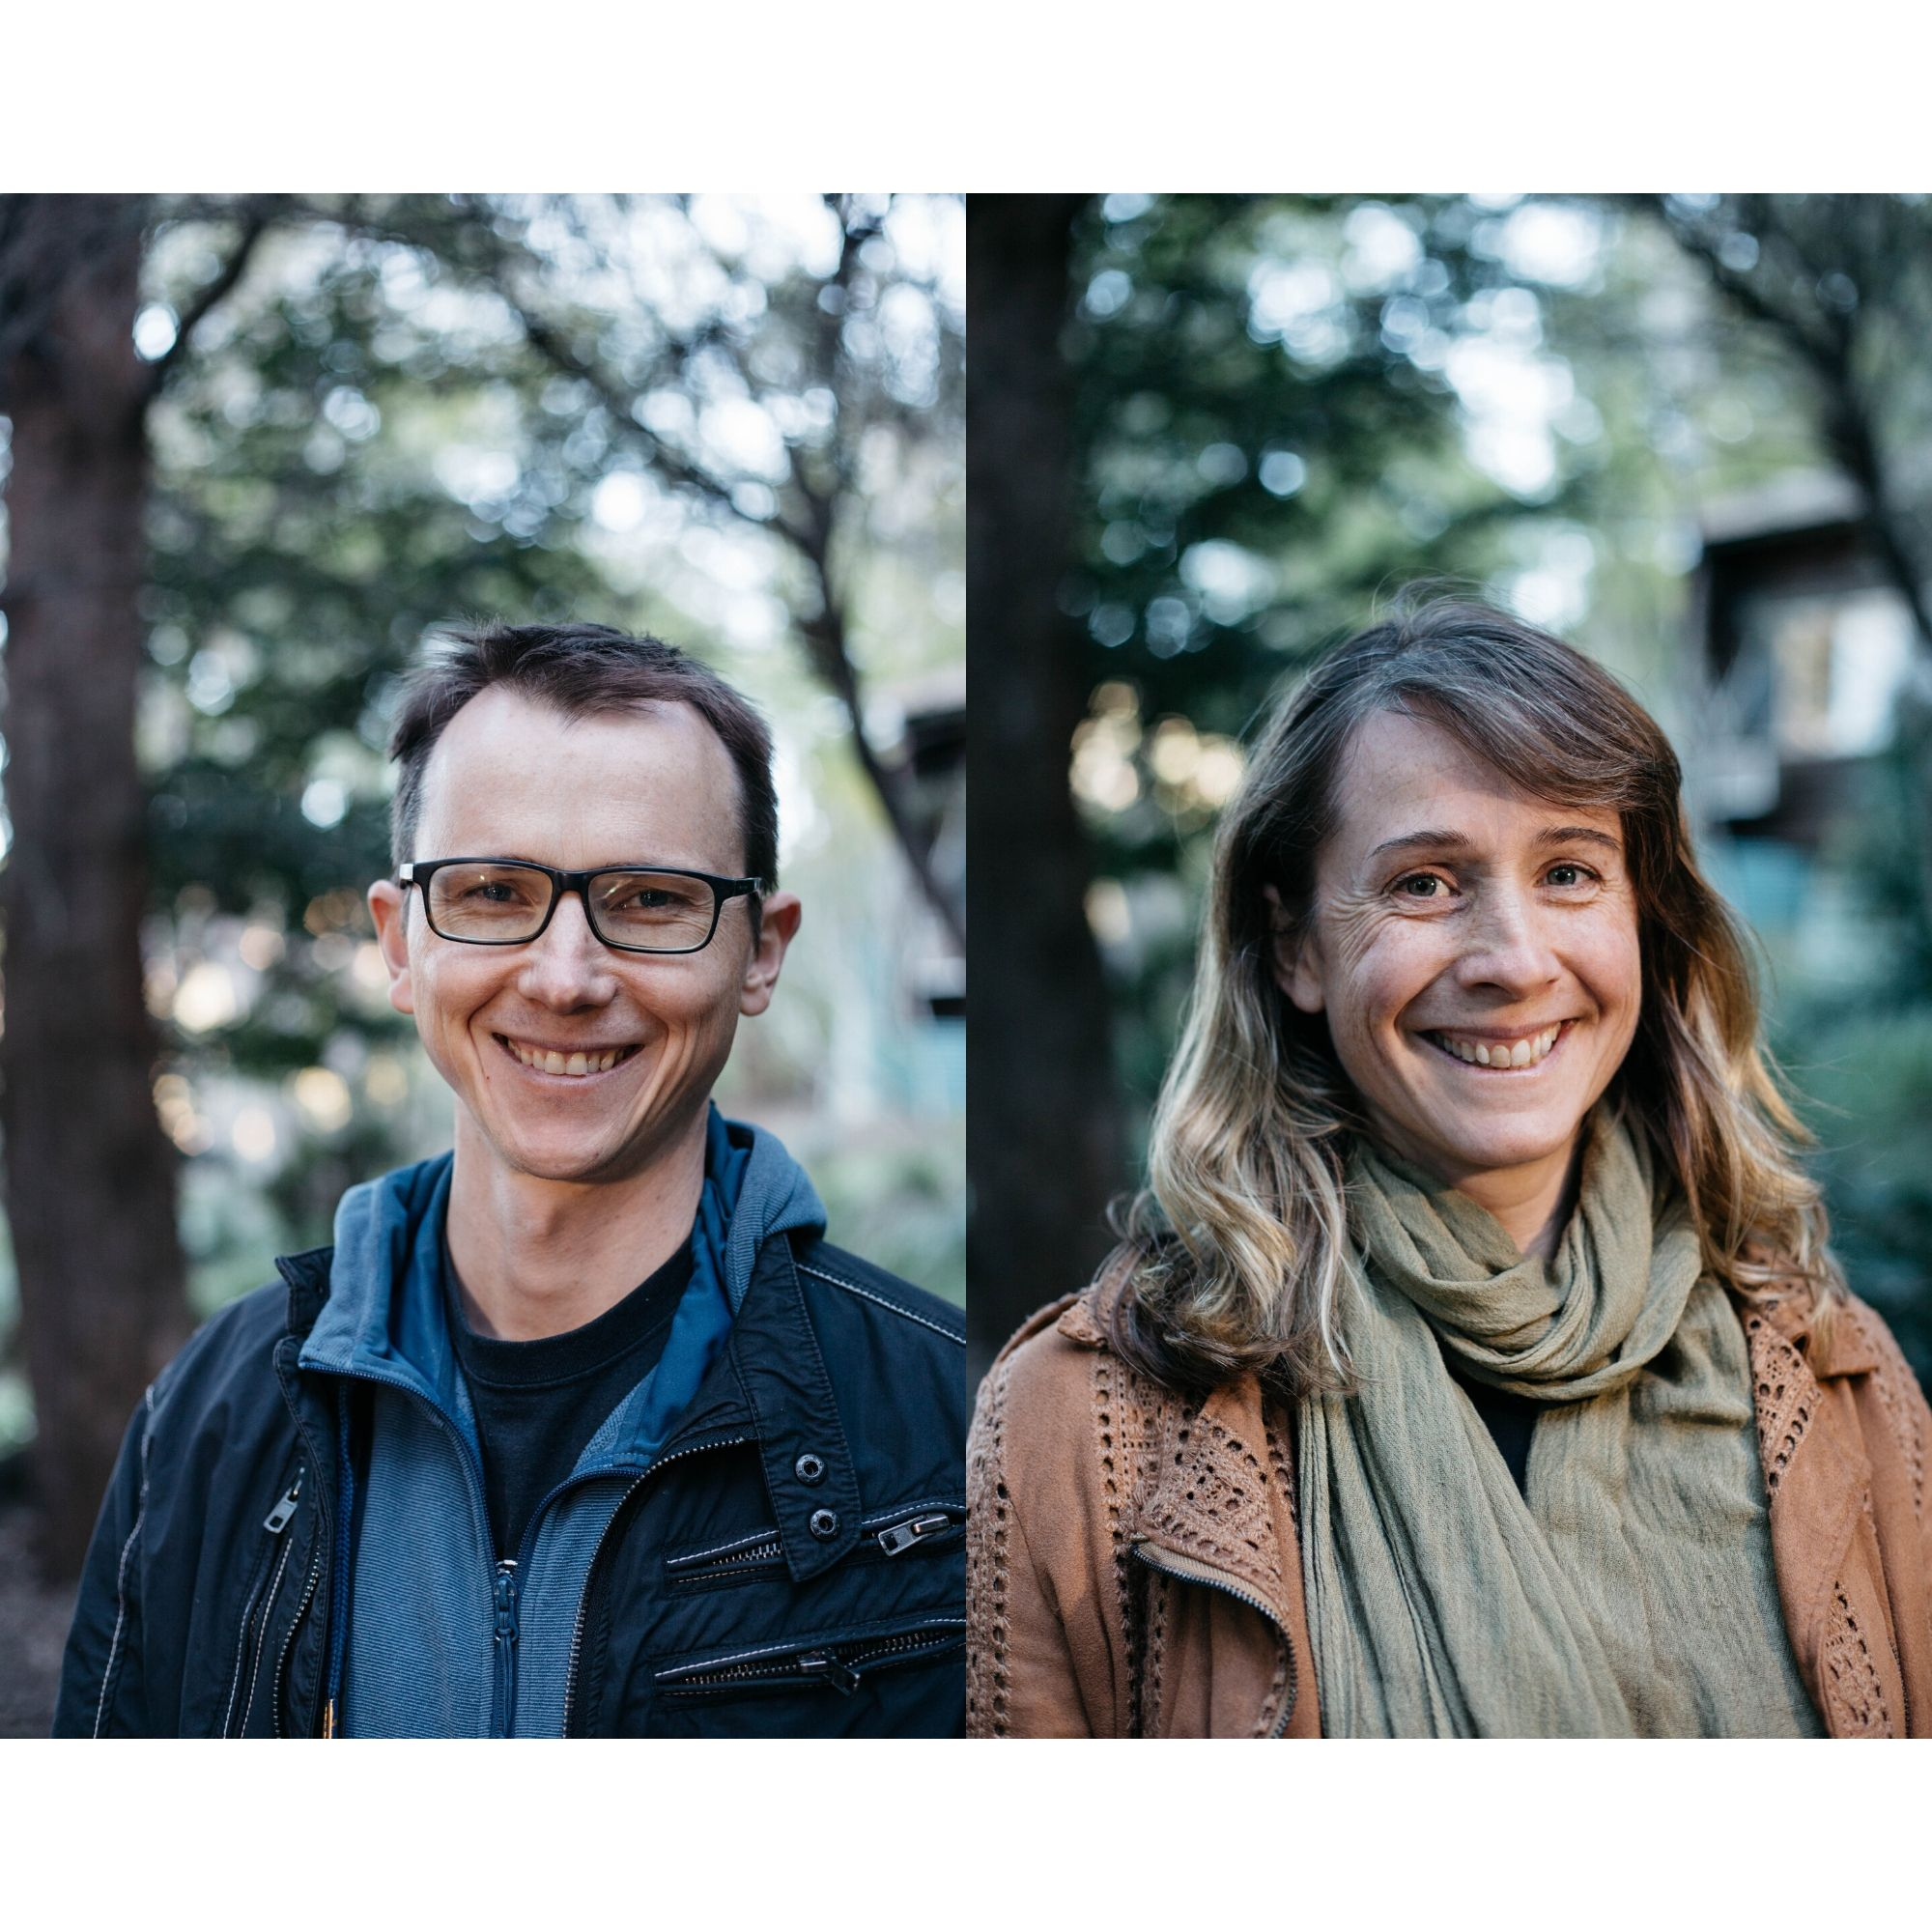 Susannah Kable and Edgars Greste, The Grow Love Project